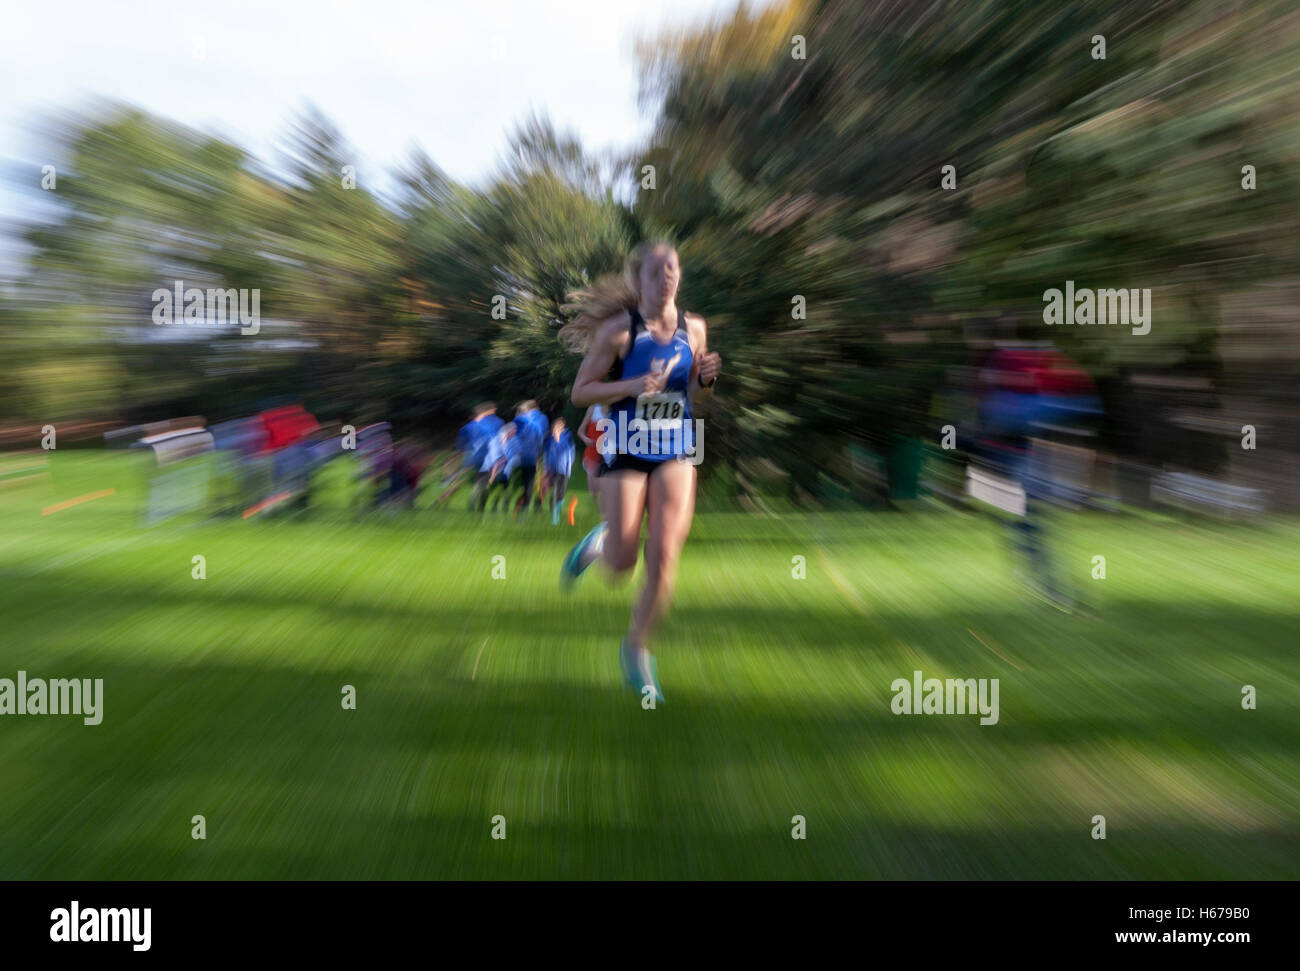 Runners in a Wisconsin High School girls' Cross Country sectional meet. - Stock Image